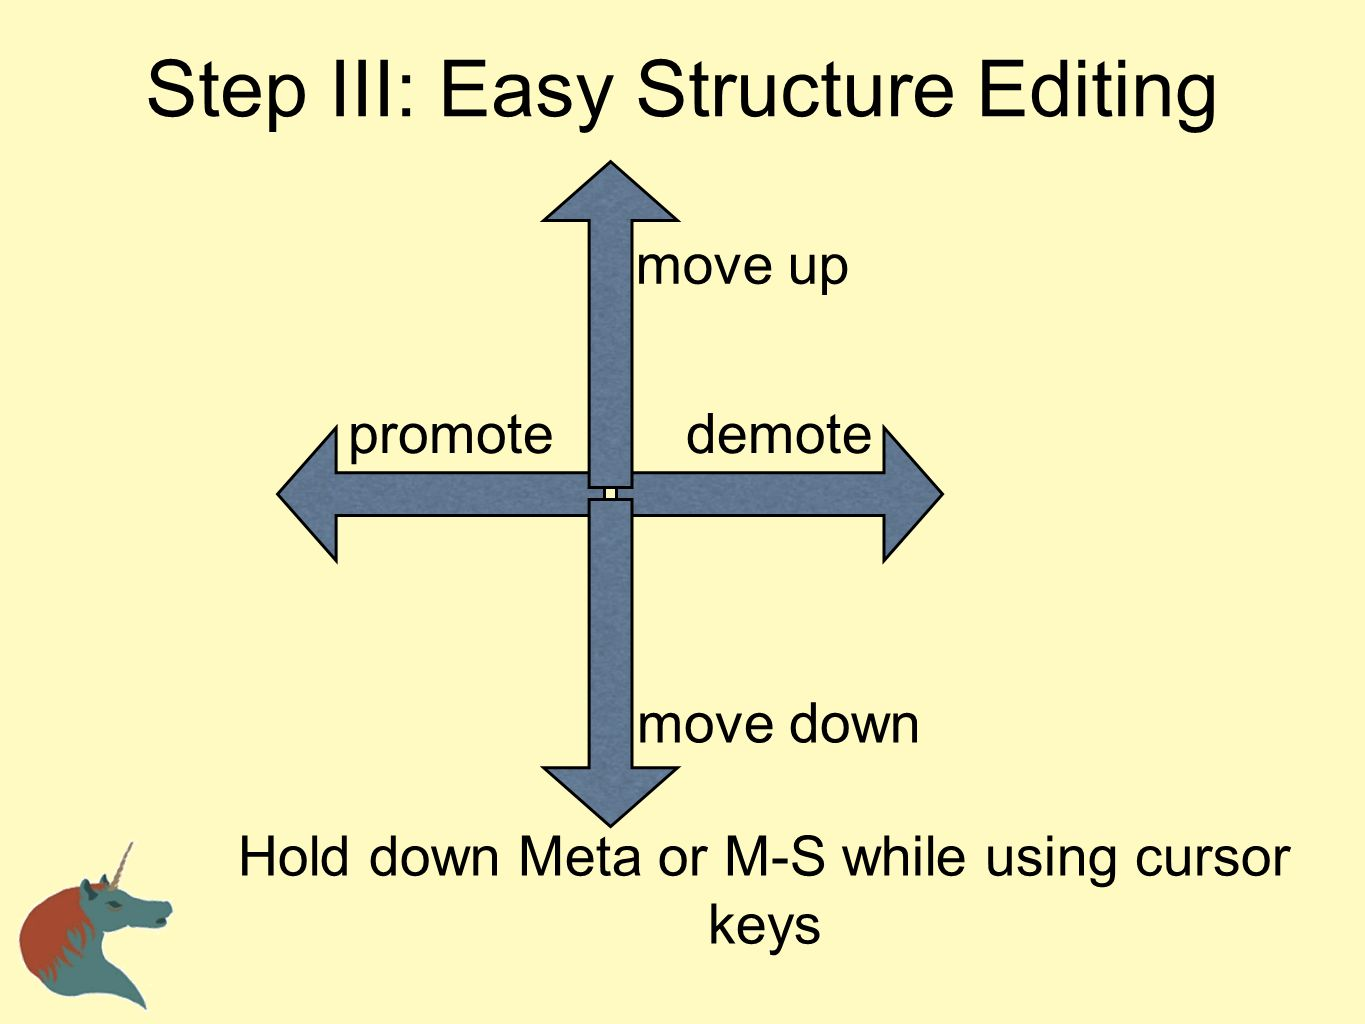 Step III: Easy Structure Editing